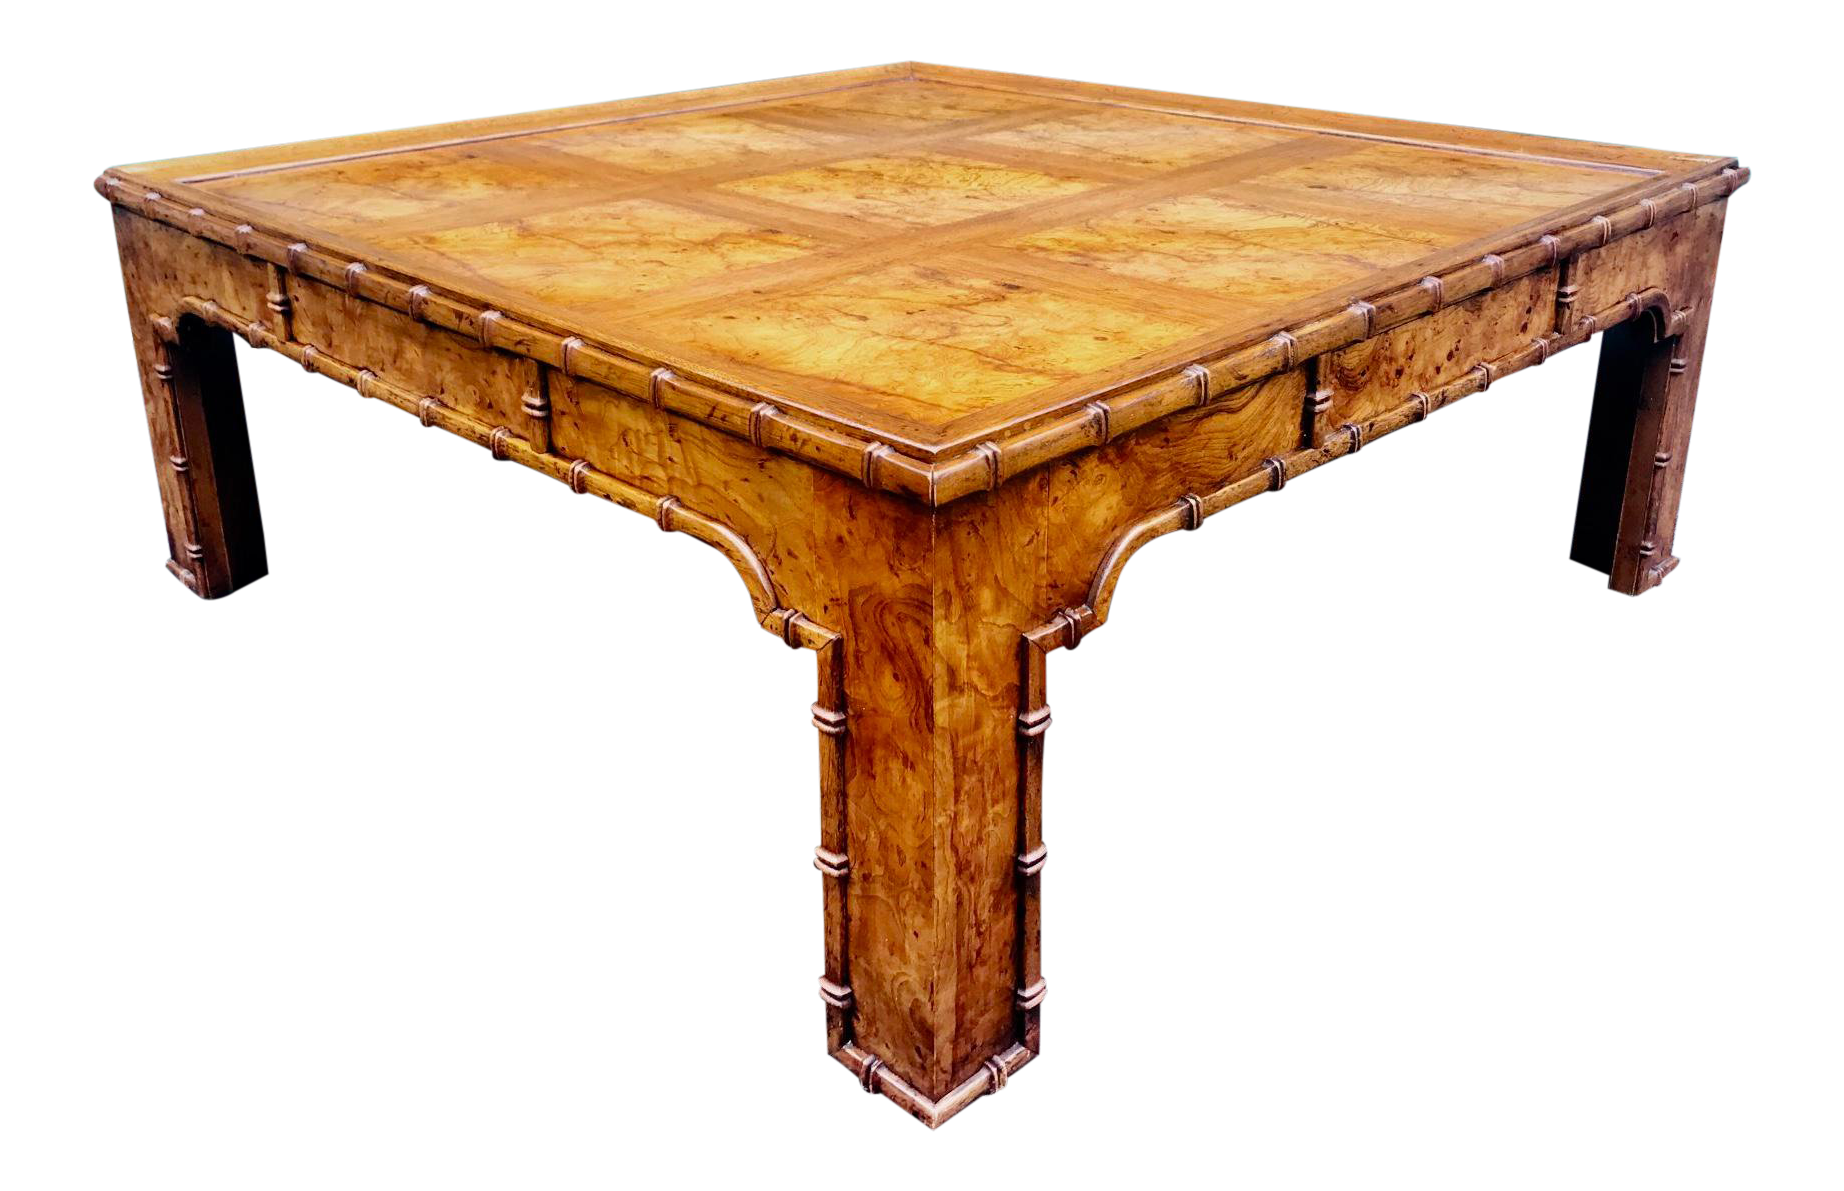 Vintage Burl Wood Square Faux Bamboo Coffee Table By Heritage On Chairish Com Coffee Table Bamboo Coffee Table Table